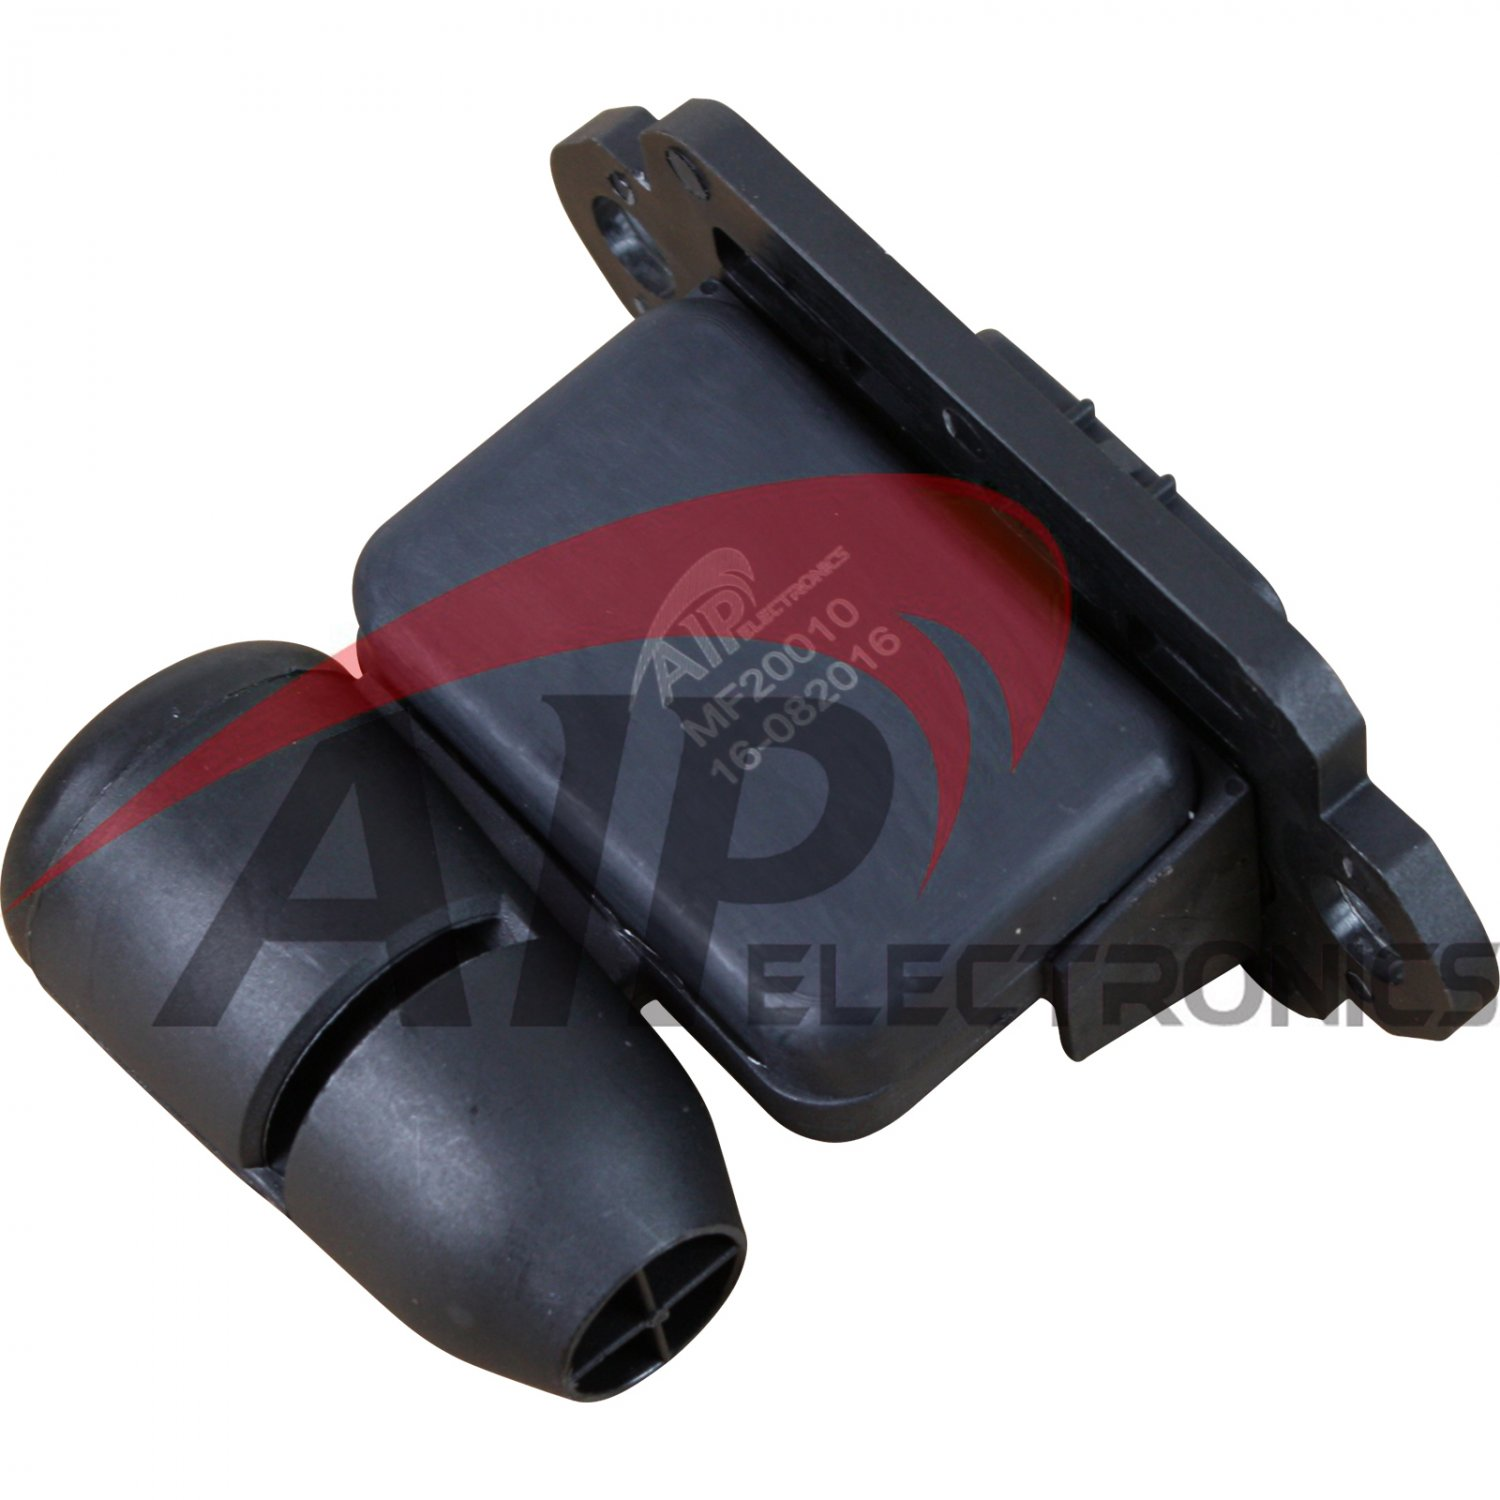 Brand New Mass Air Flow Sensor Meter MAF AFM TOYOTA LEXUS 3.0L V6 4.0L V8 Oem Fit MF20010